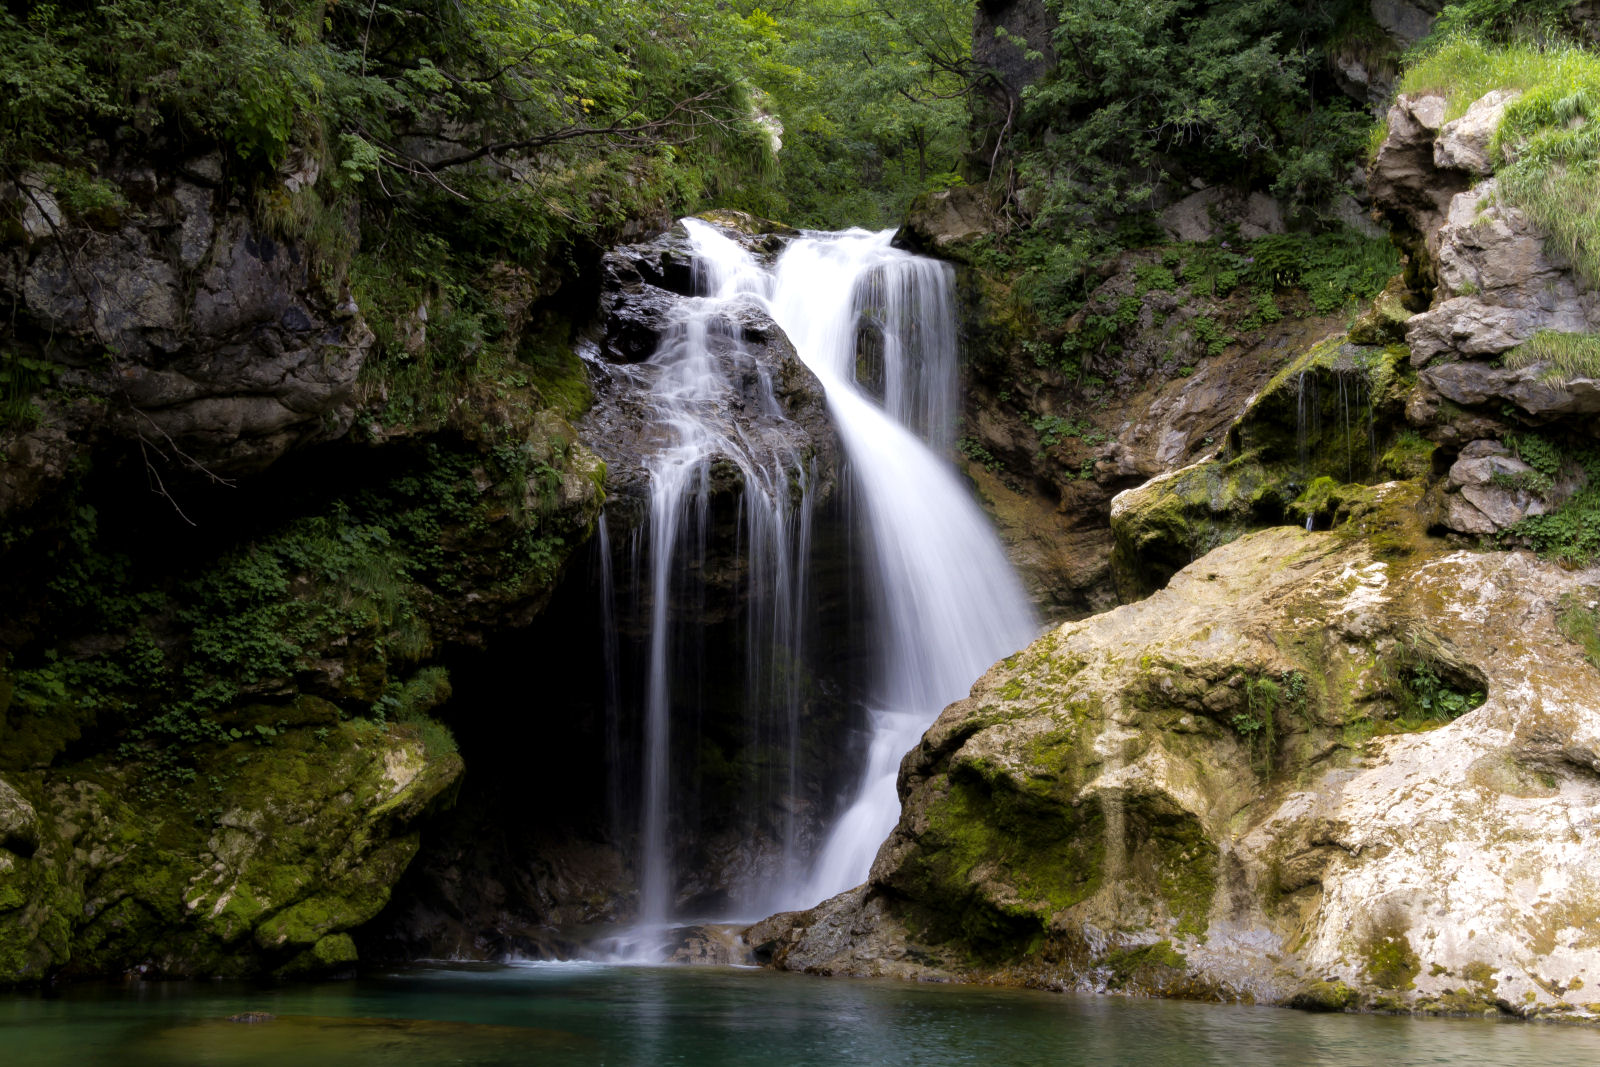 vintar-gorge-waterfall-slovenia